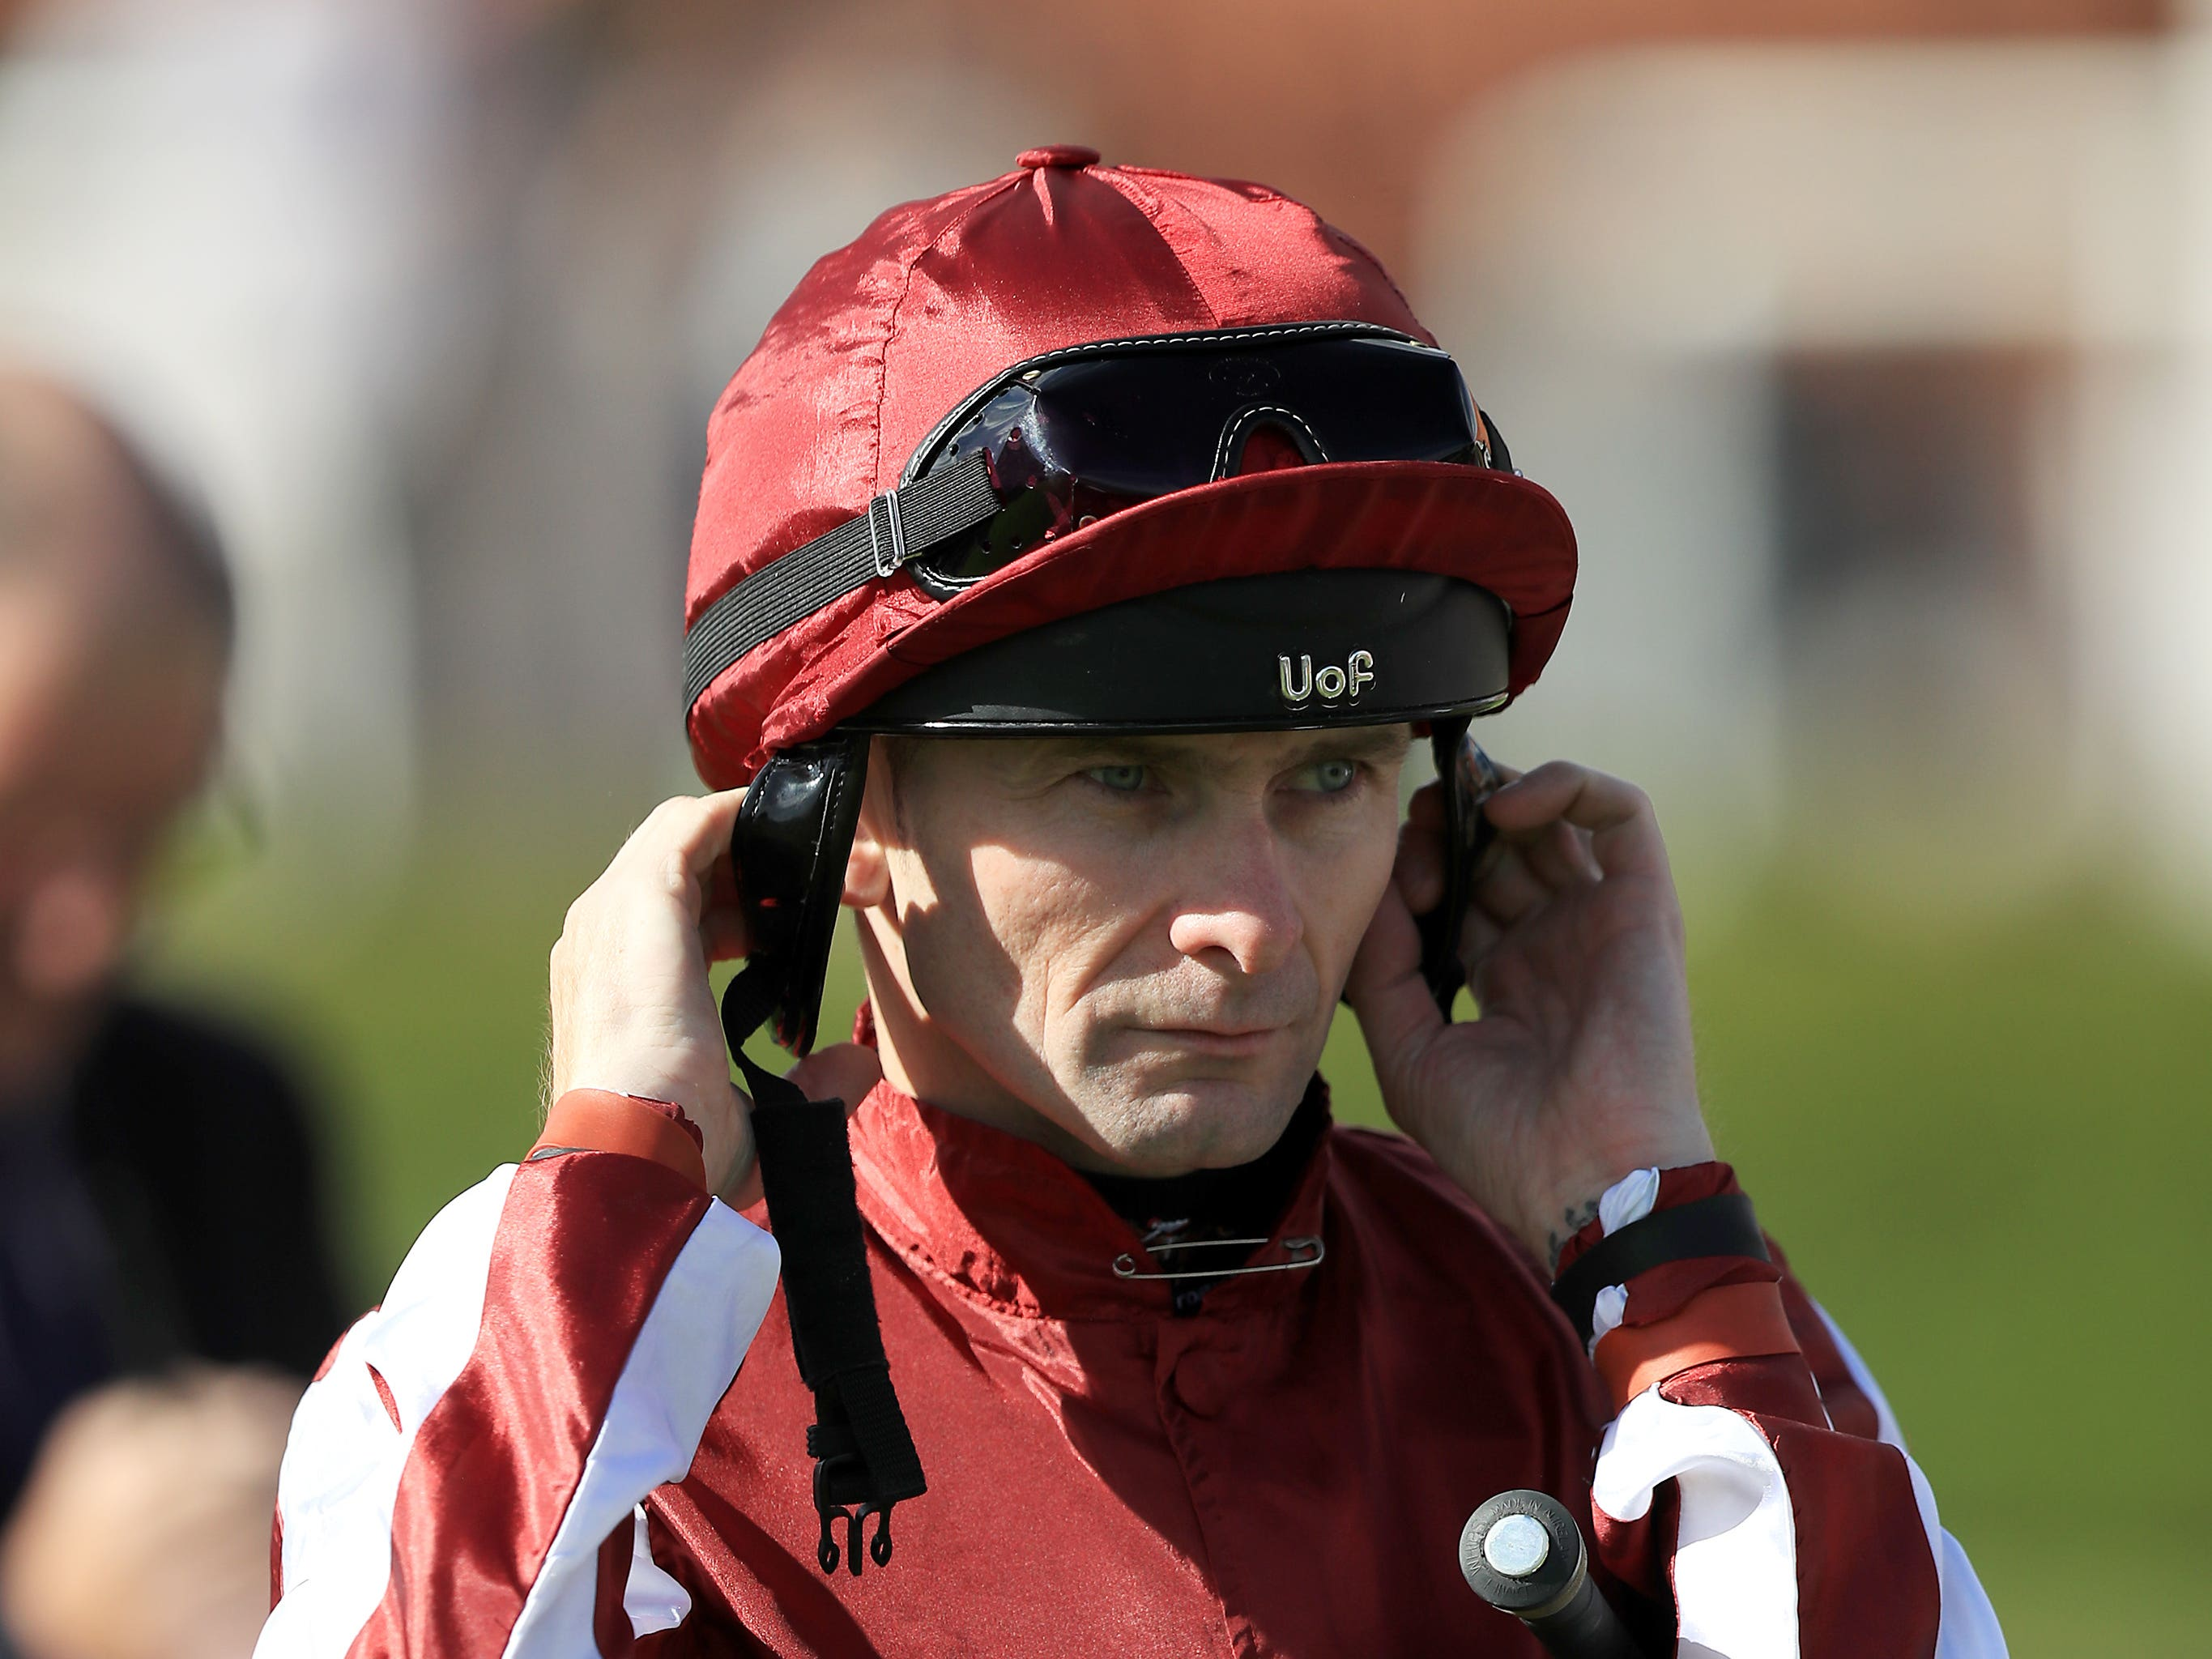 Robert Havlin hopes to be back for the start of the Flat season after breaking his collarbone and rib (Mike Egerton/PA)